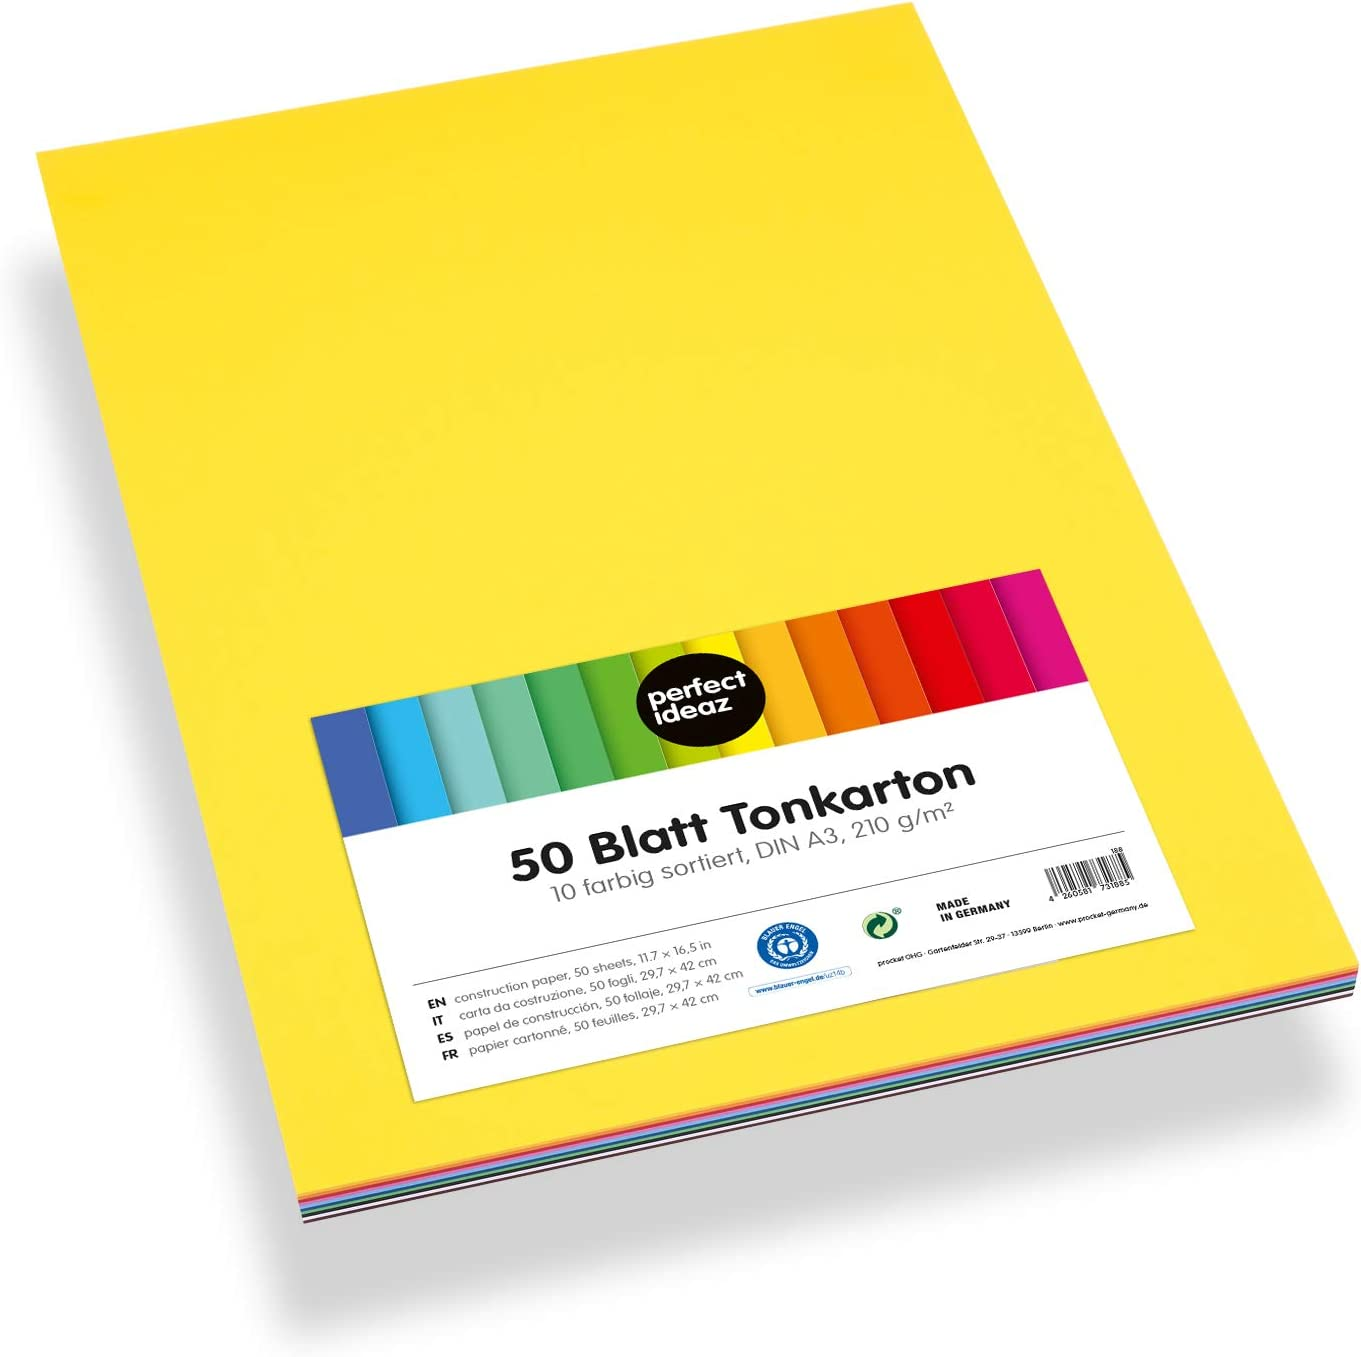 Perfect ideaz 50 hoja a3 tono-caja multicolor 210 G de papel para bricolaje coloreada cartón